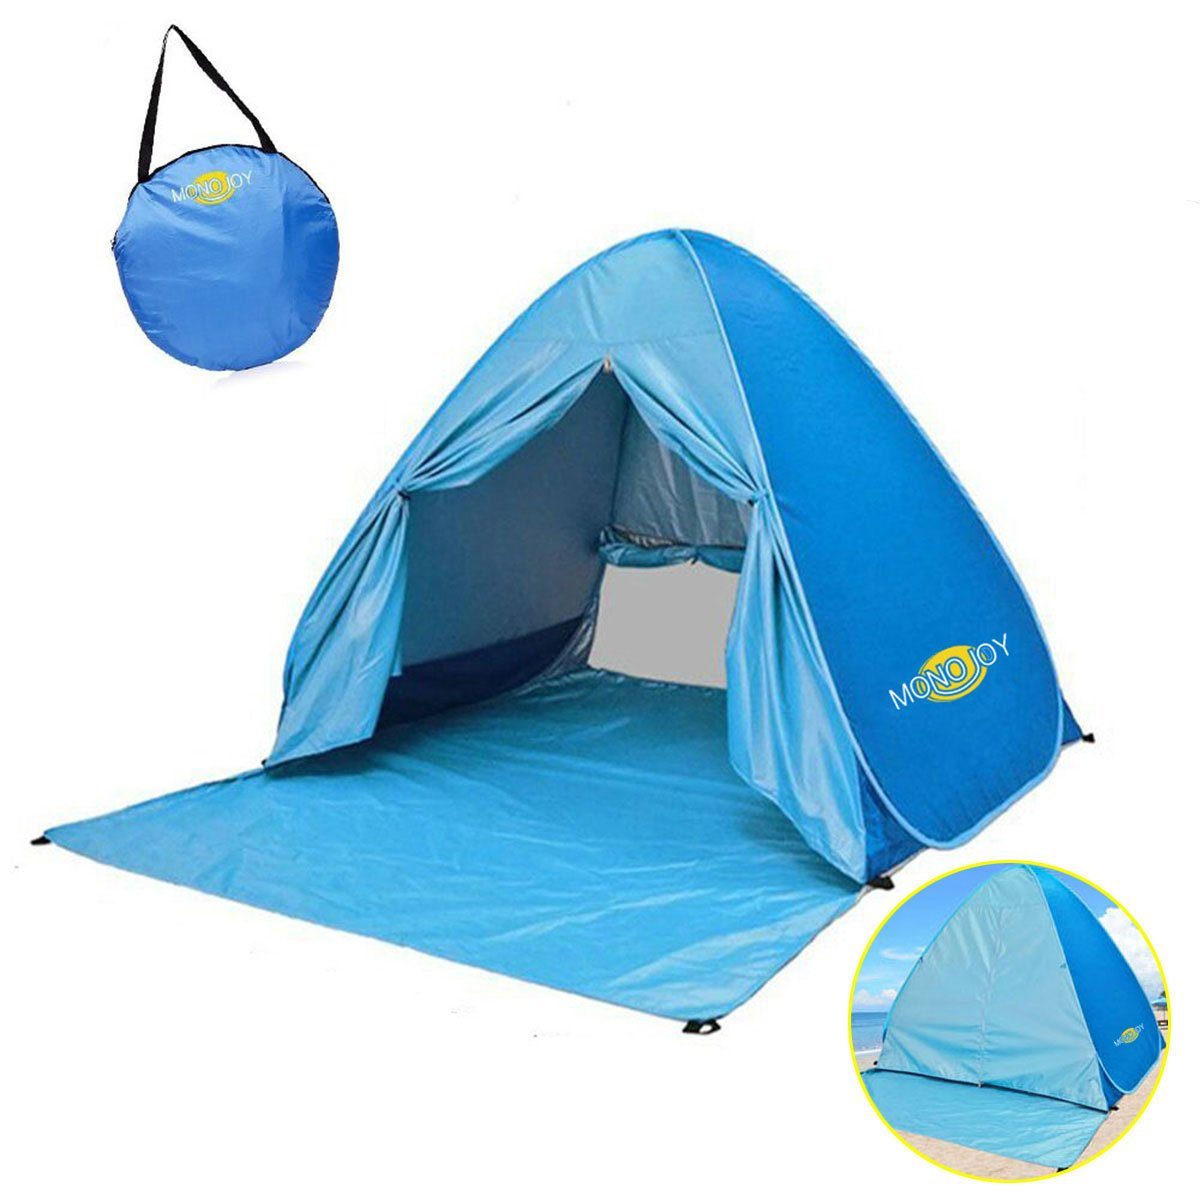 MONOJOY Pop Up Beach Tent, Baby Sun Shelter Shade Instant Tent Outdoor Quick Cabana Portable Canopy 2-3 Person Easy Lightweight UV Tents Umbrella 50+ Protection for Kids Infant Baby Family ¡ (blue)